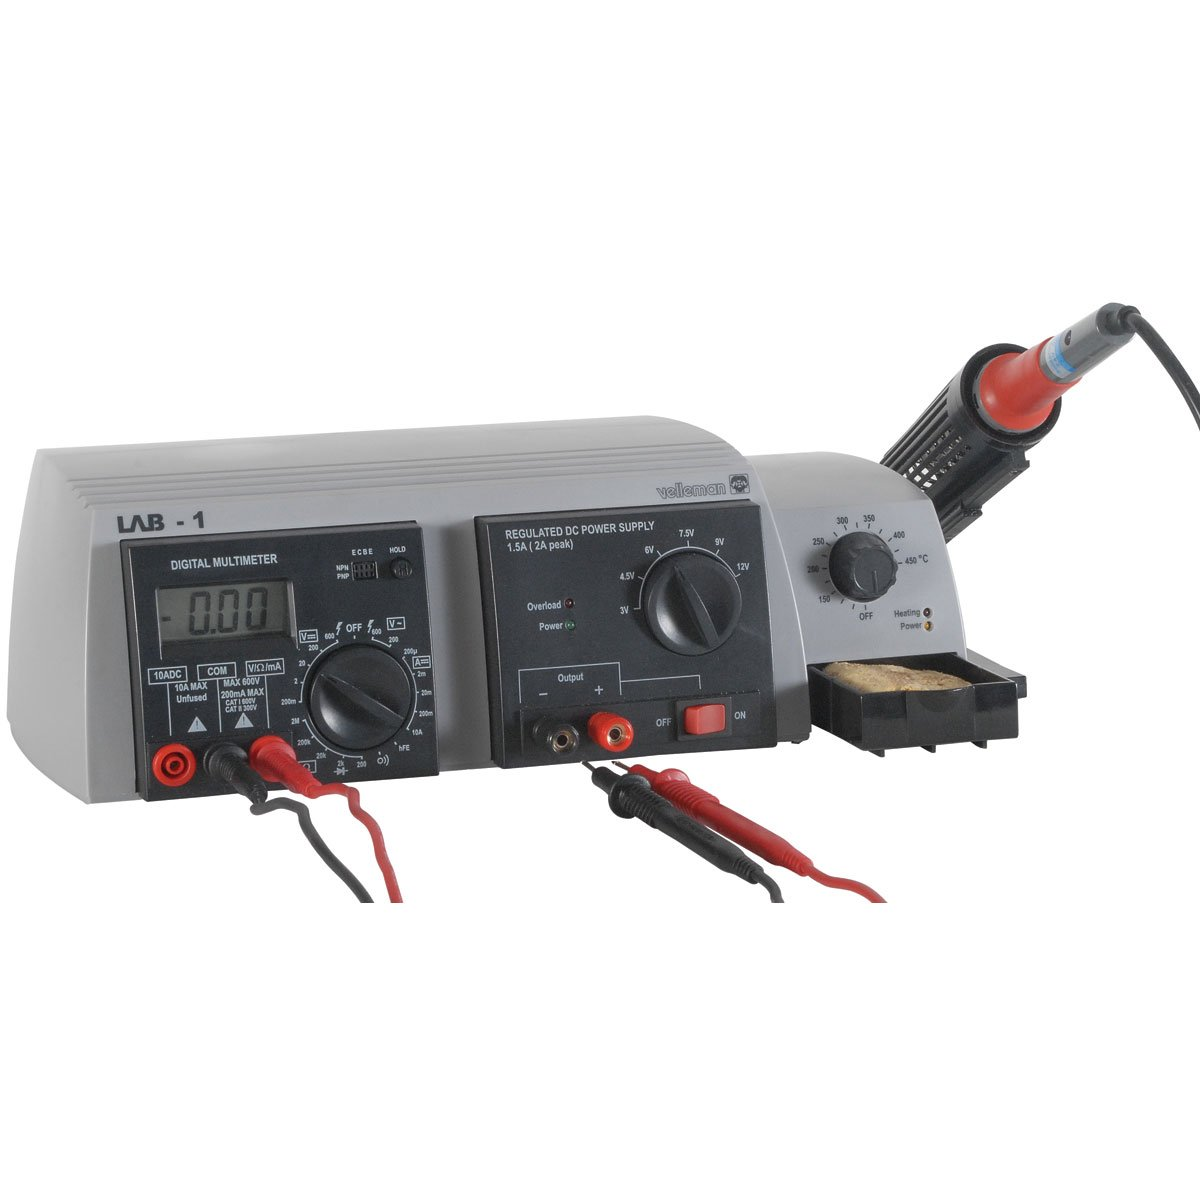 Velleman LAB1U Three in One Lab Unit Multimeter, Power Supply and Soldering Iron